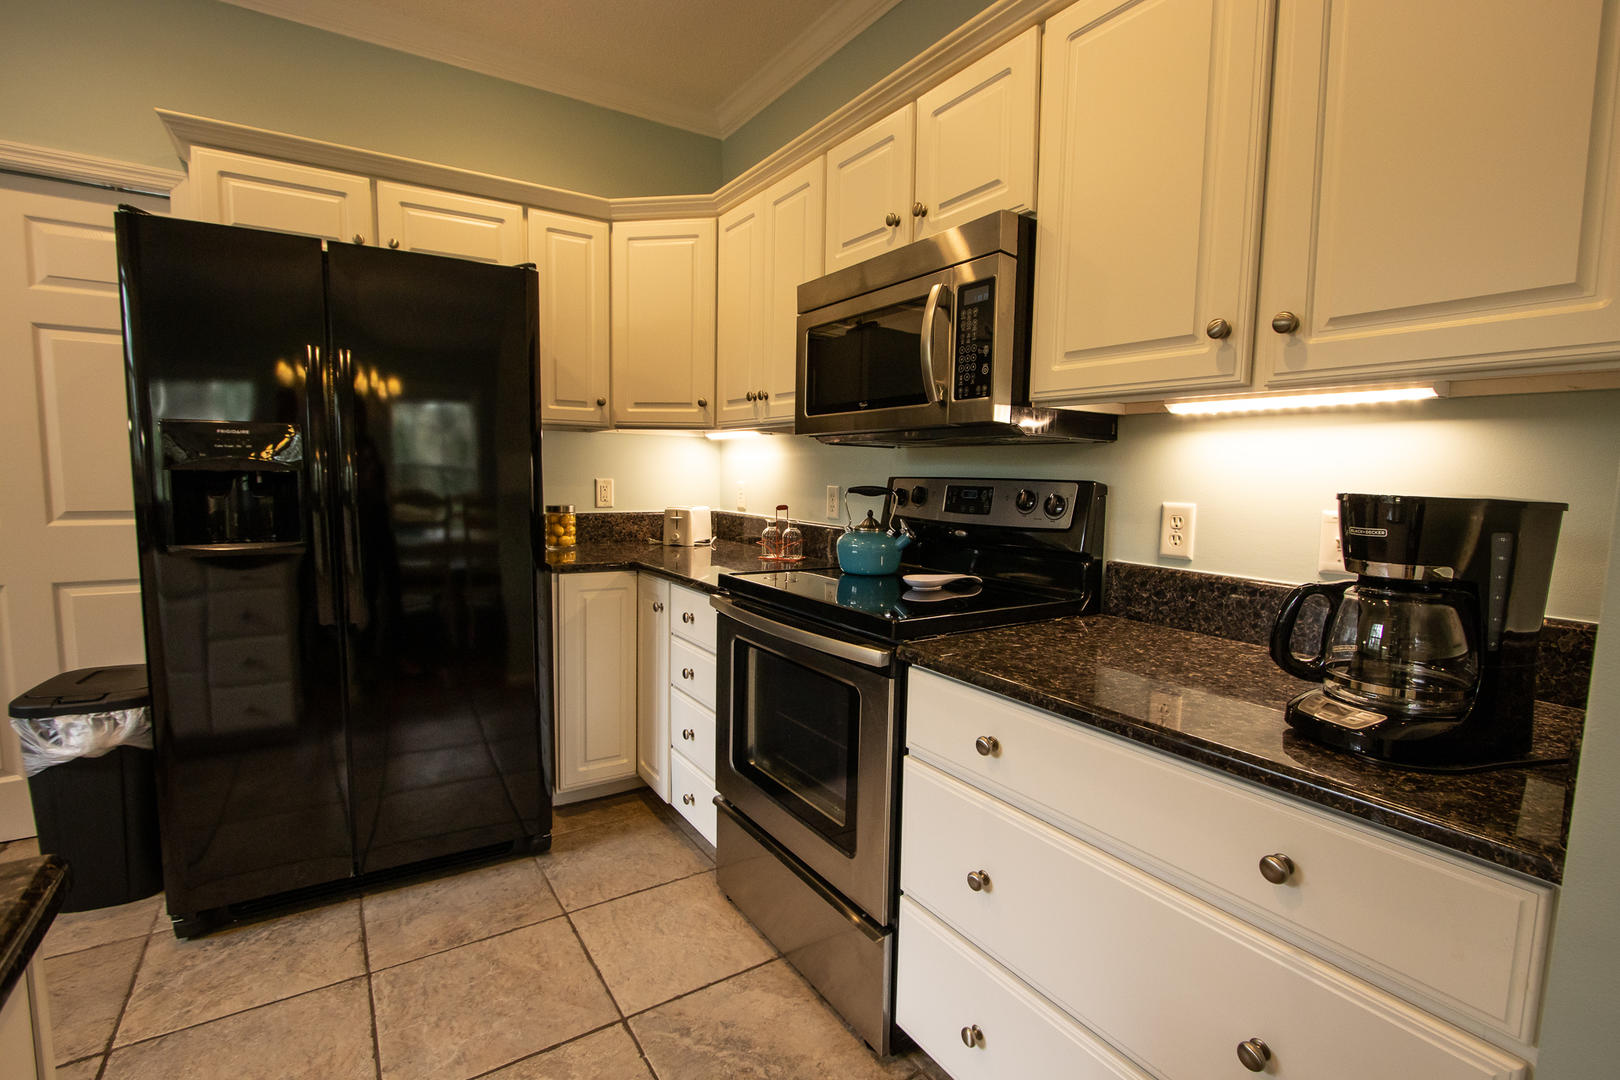 Kitchen, 2 seats at bar, coffee pot, laundry room attached